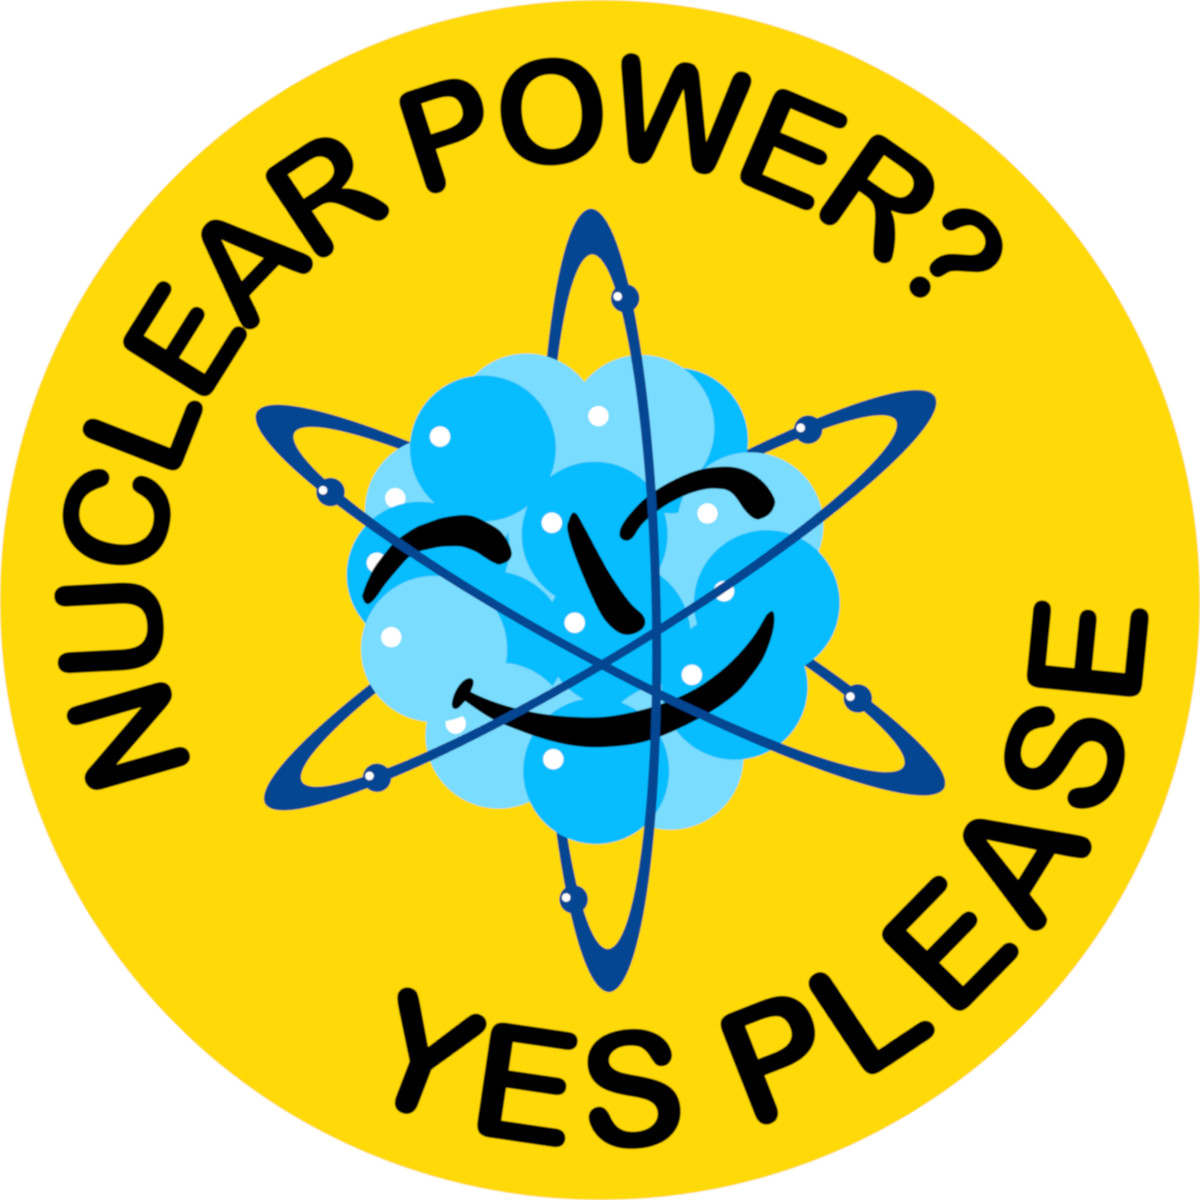 Bring on the Green NUKE Deal